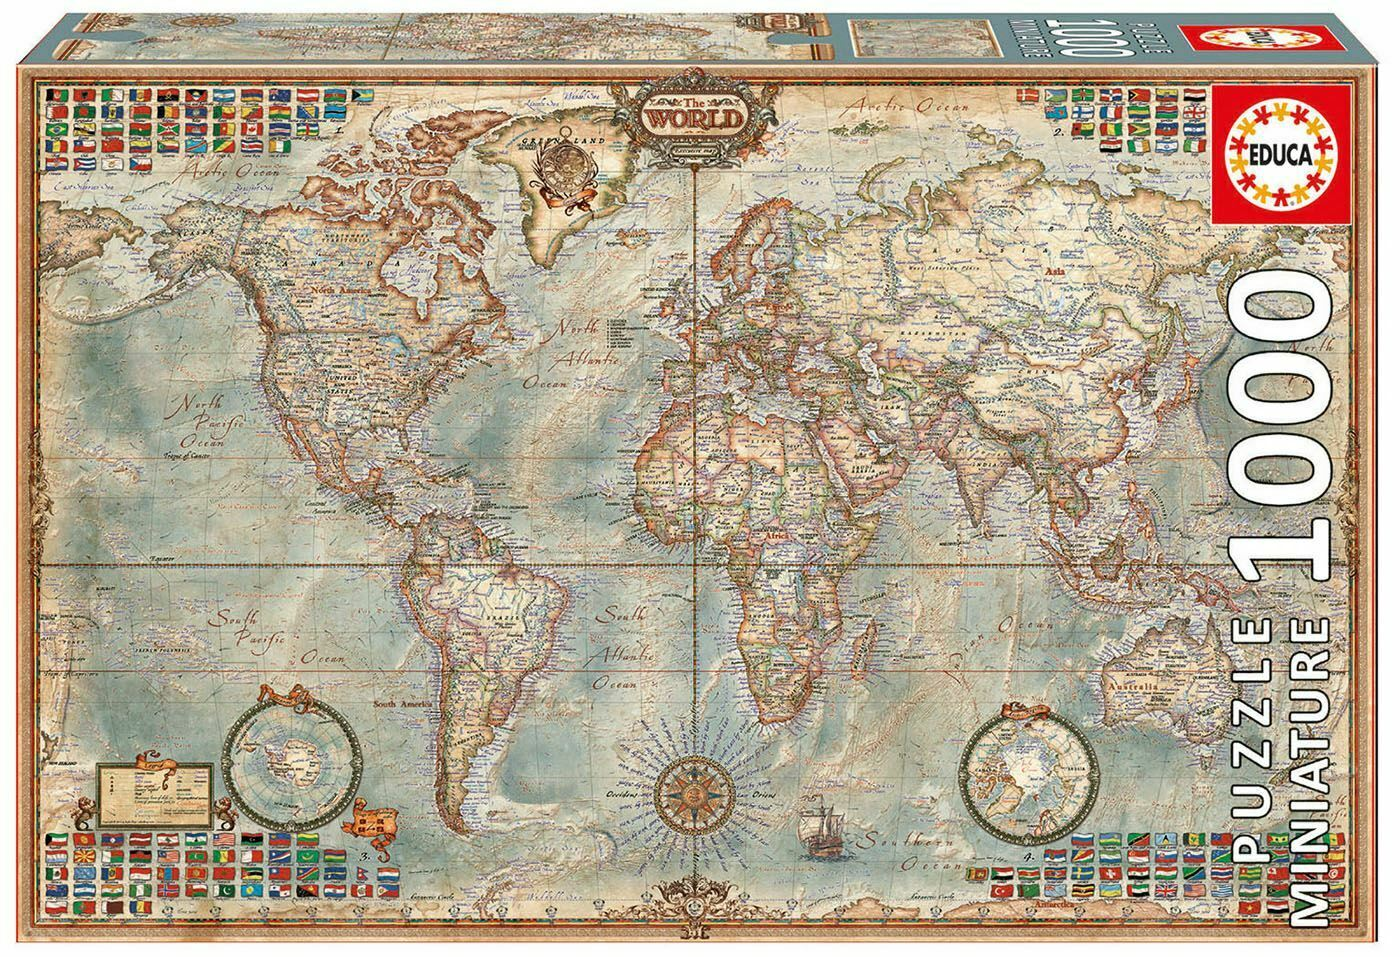 Pusle Political Map of the World